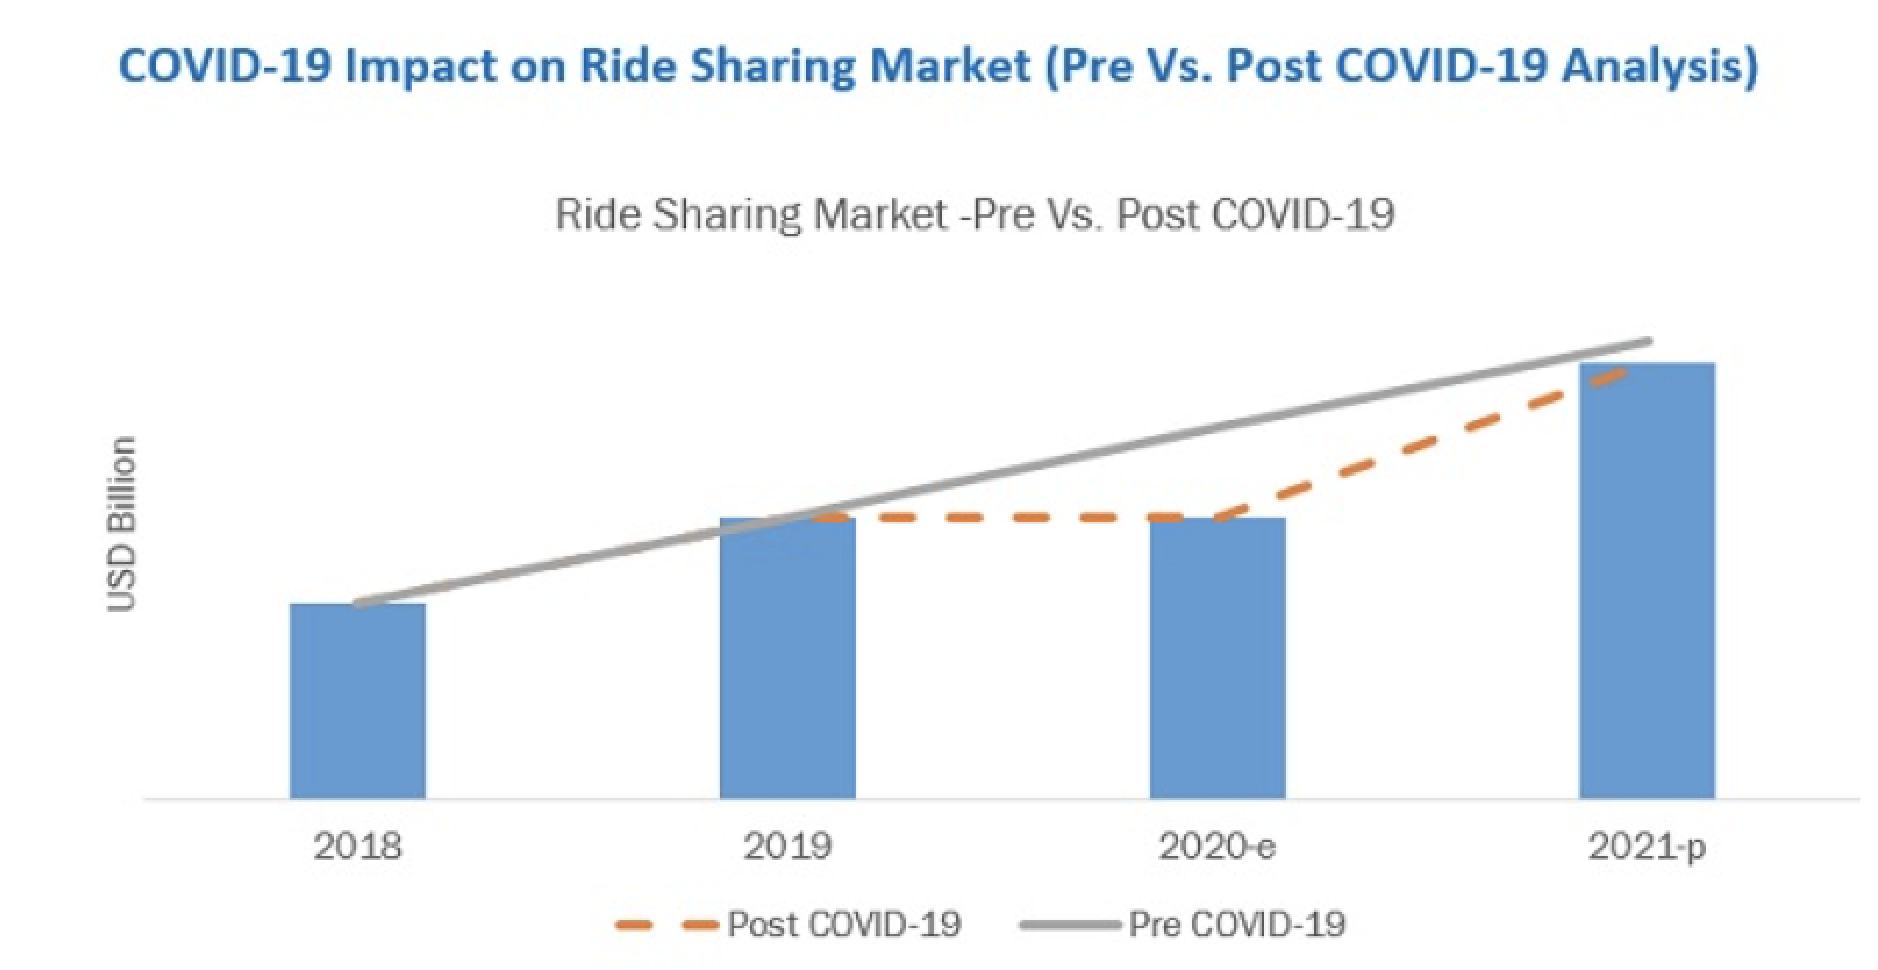 Ride Sharing Market after Covid-19